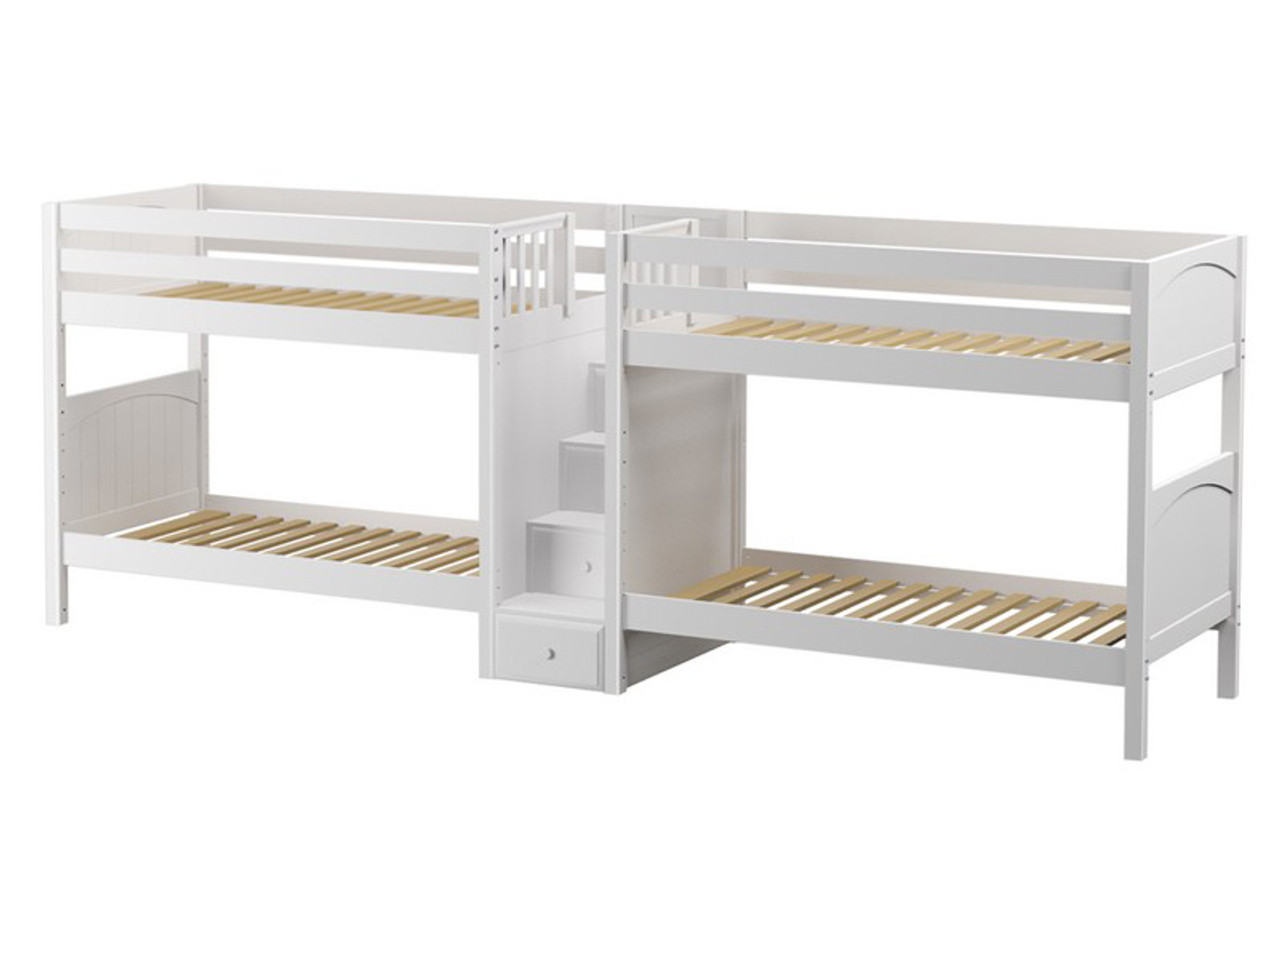 Quadruple Bunk Bed With Trundle Marcuscable Com